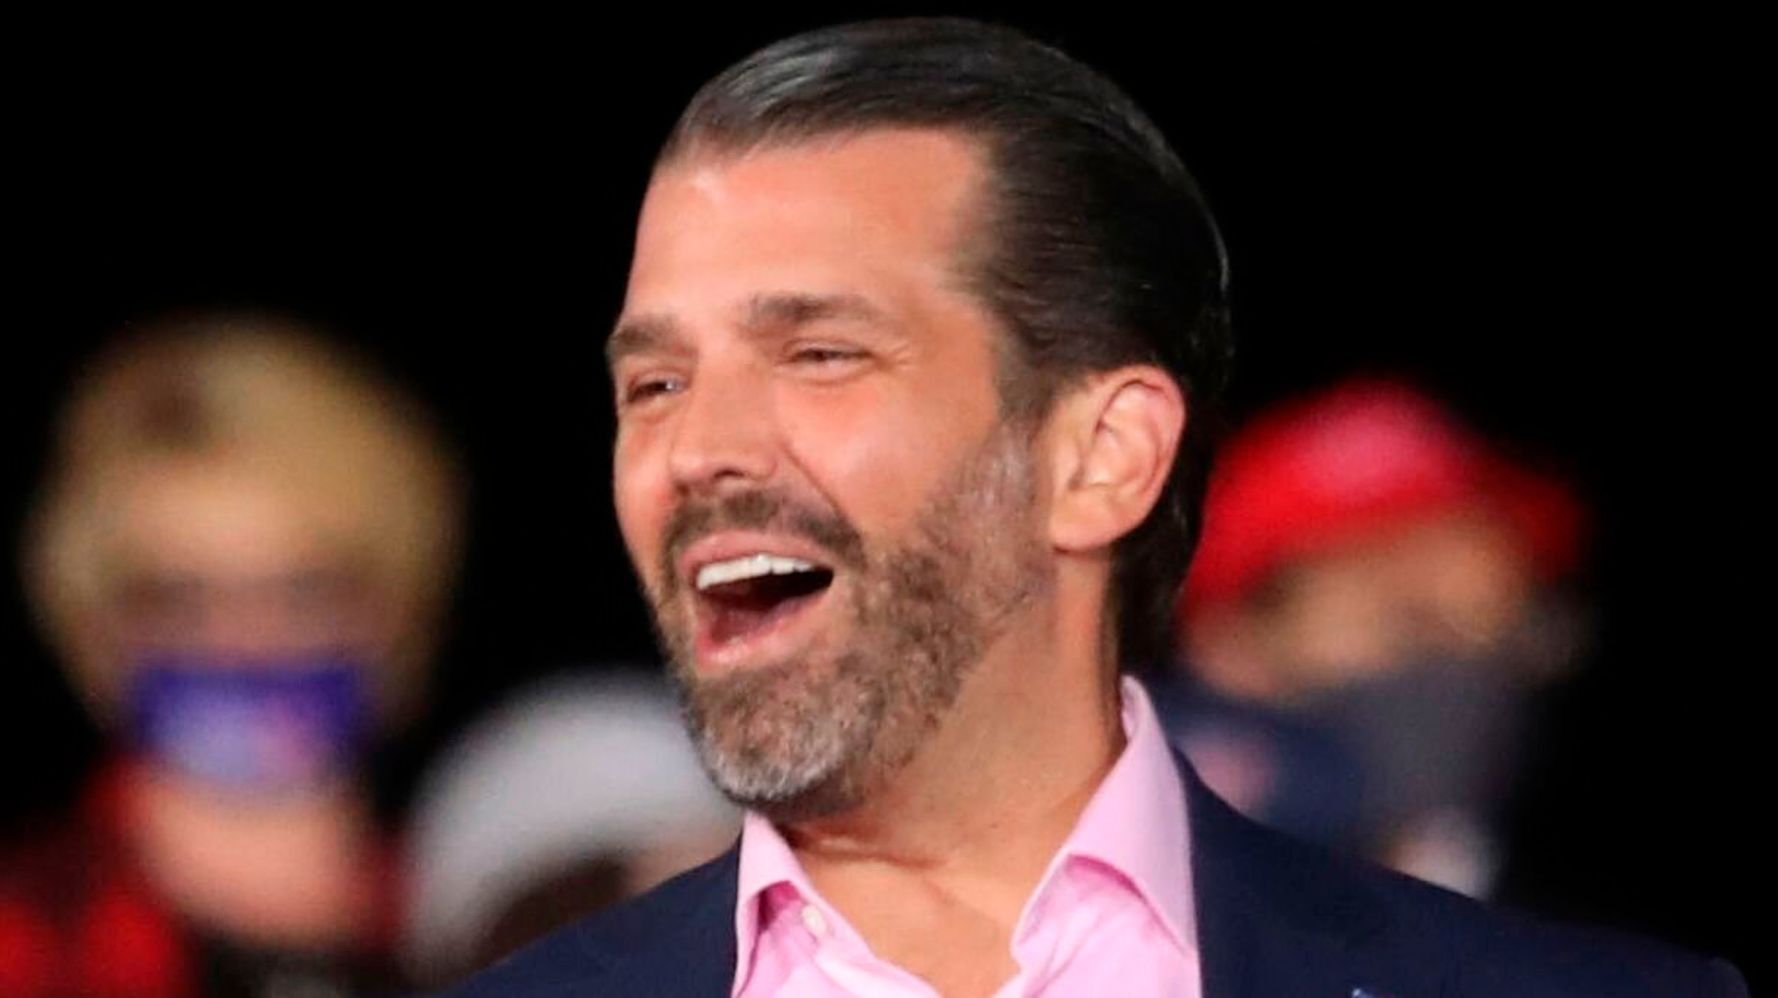 Donald Trump Jr. Receives A Blunt Reminder About Dad After Clueless Attack On Biden